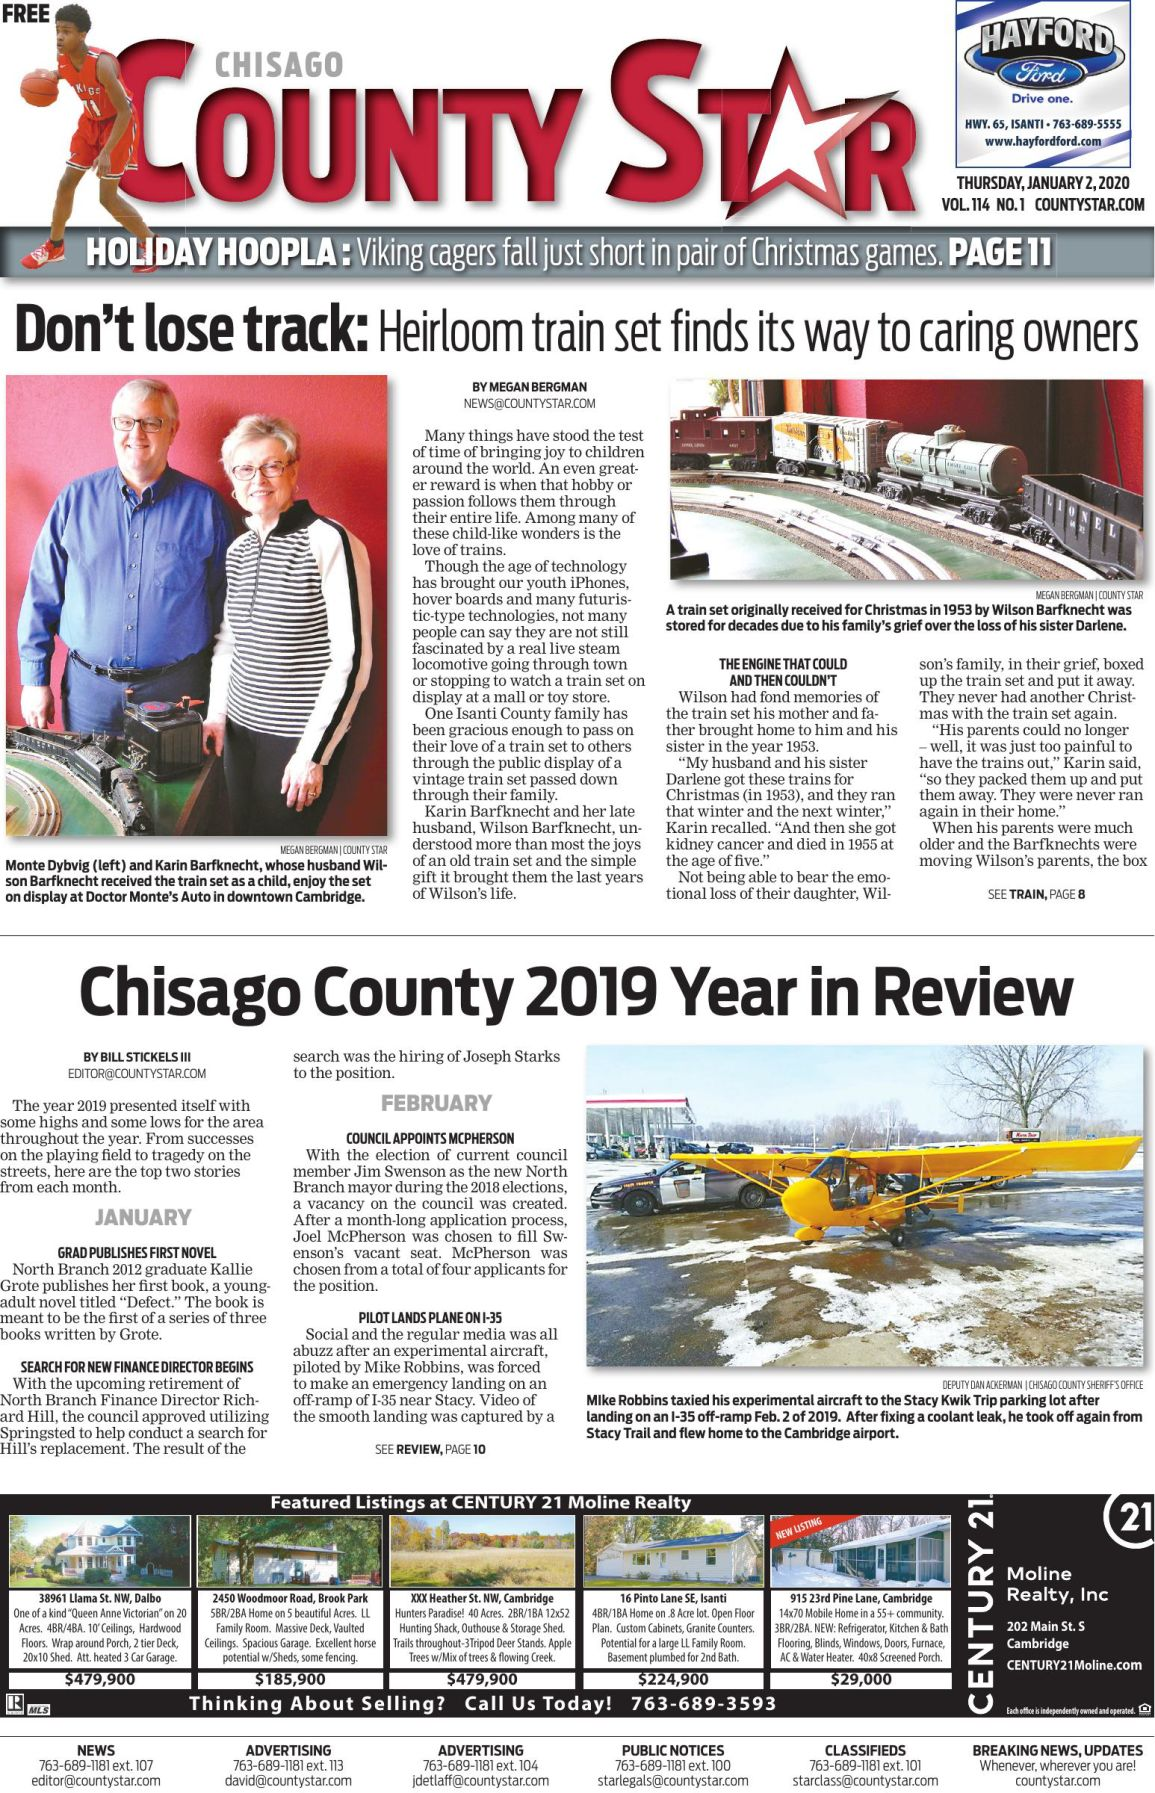 Chisago County Star January 2, 2020 e-edition